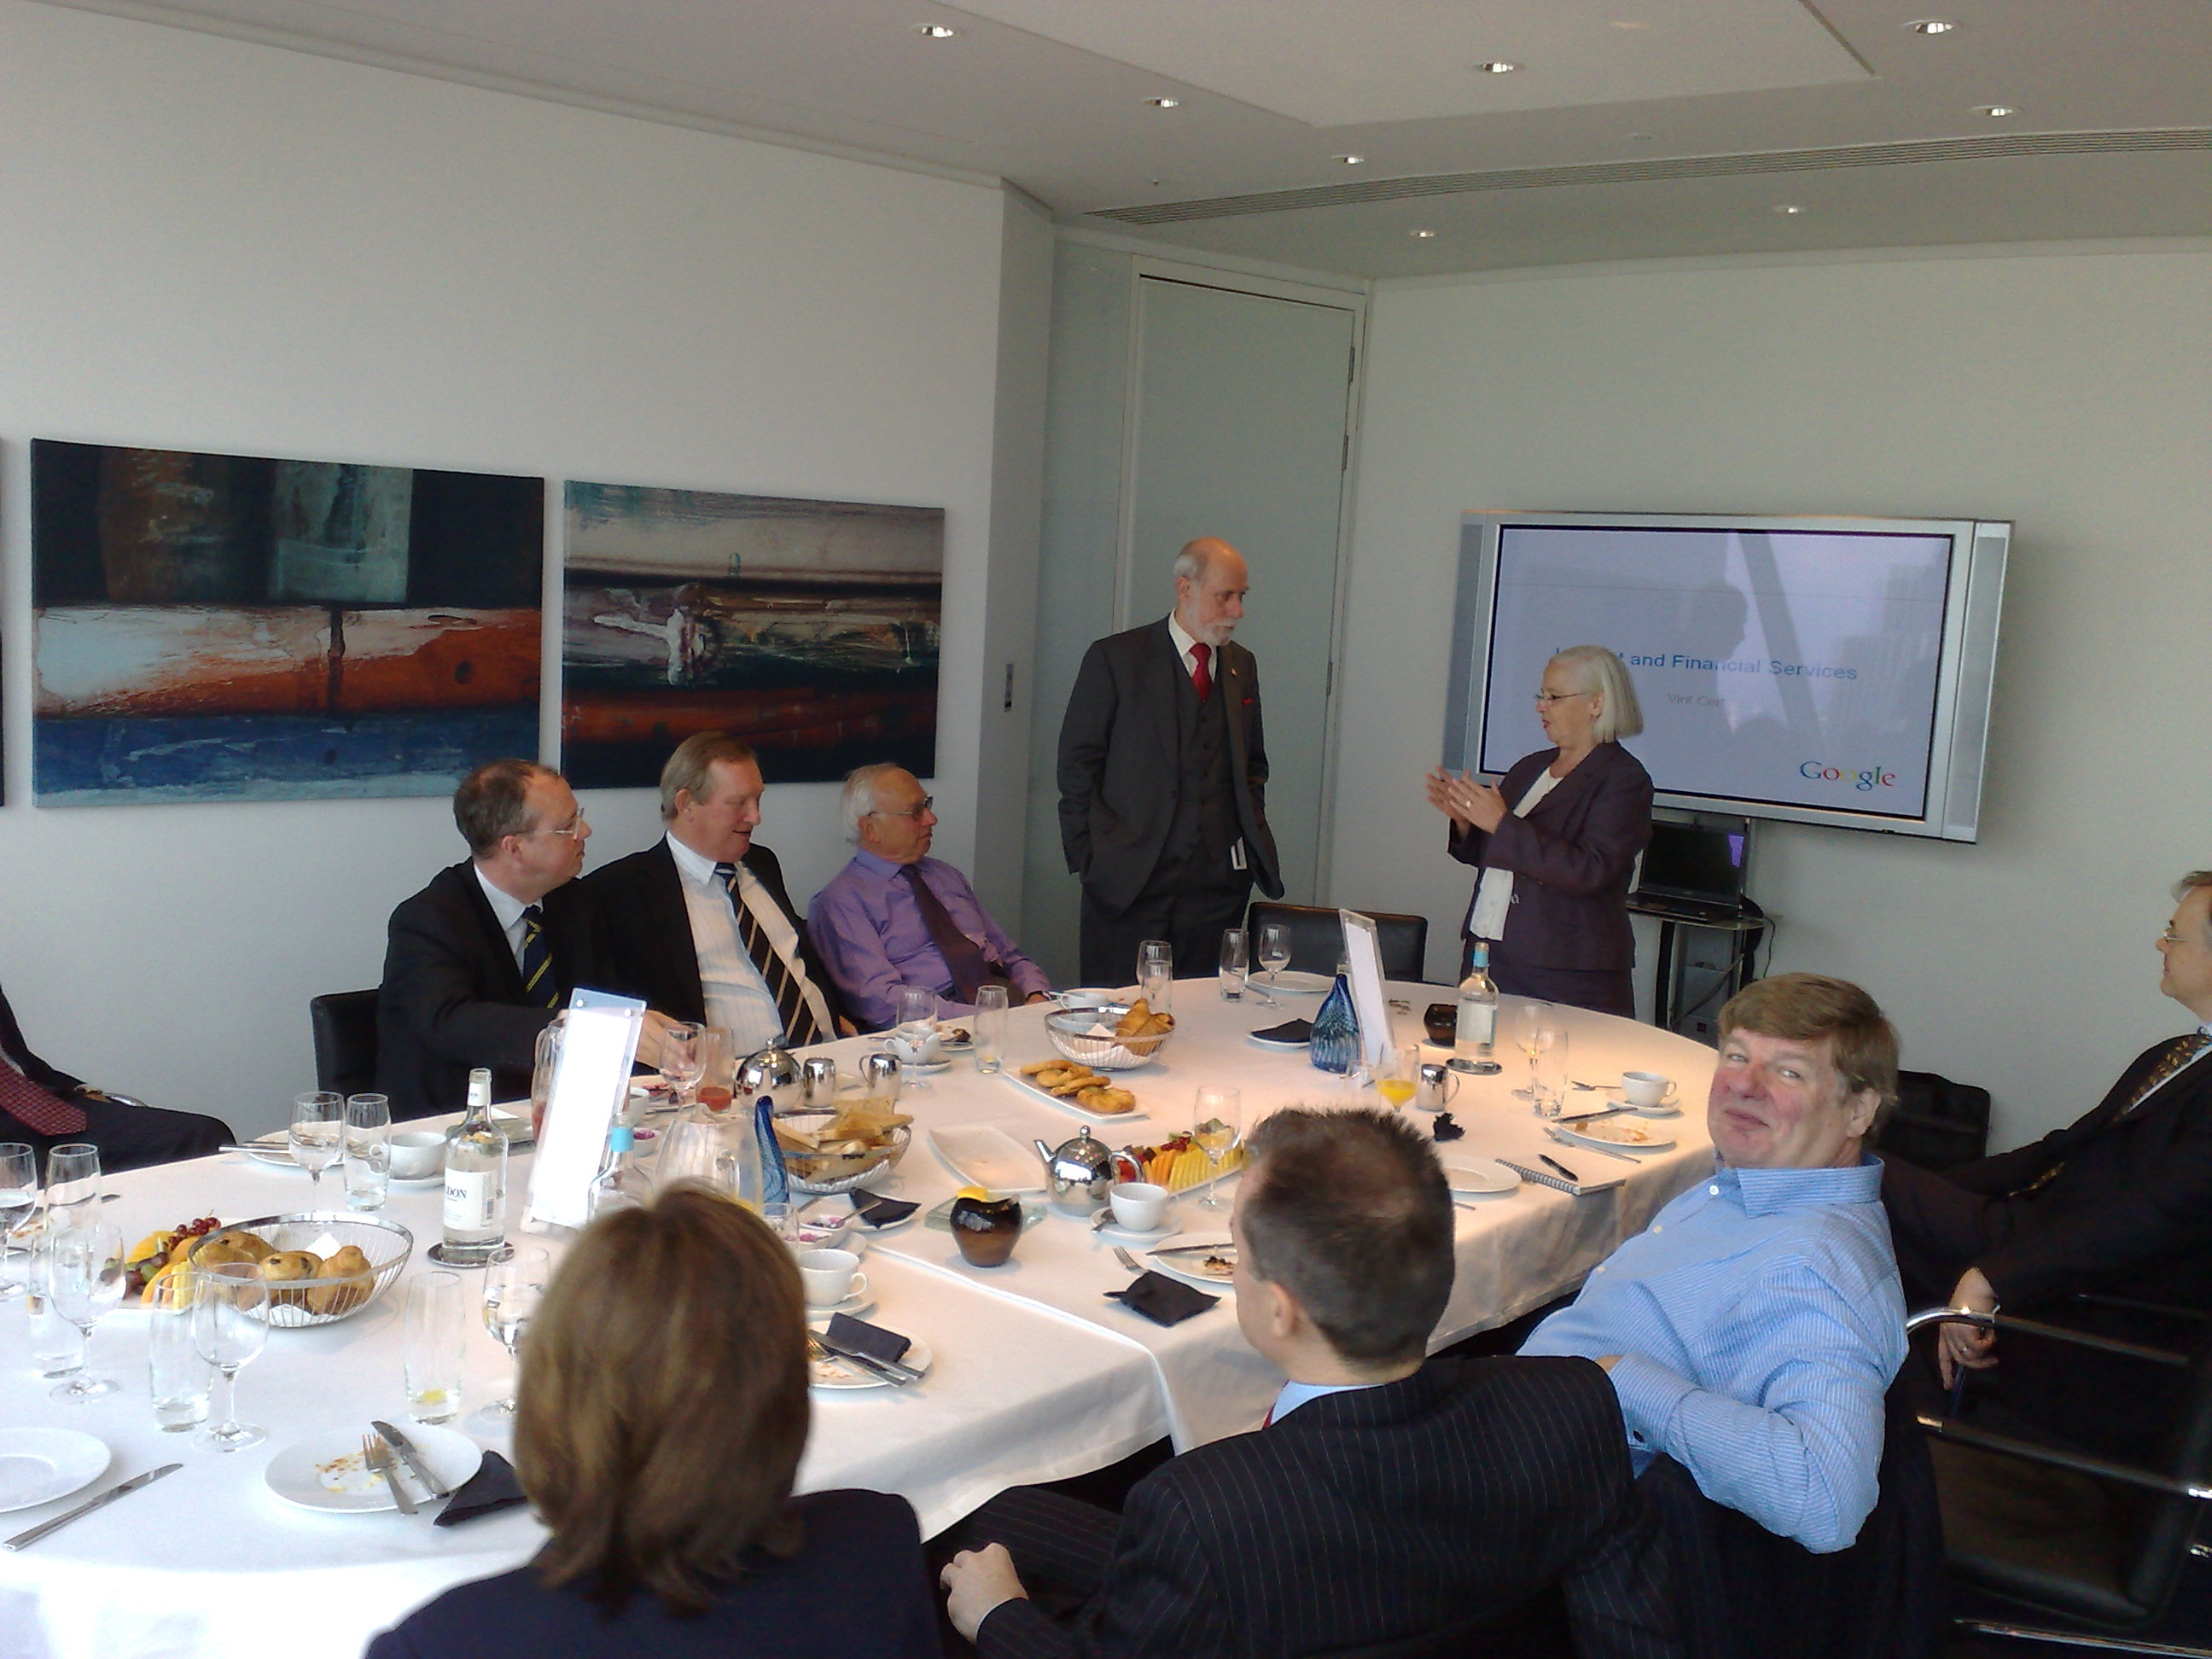 Picture of breakfast meeting attendees